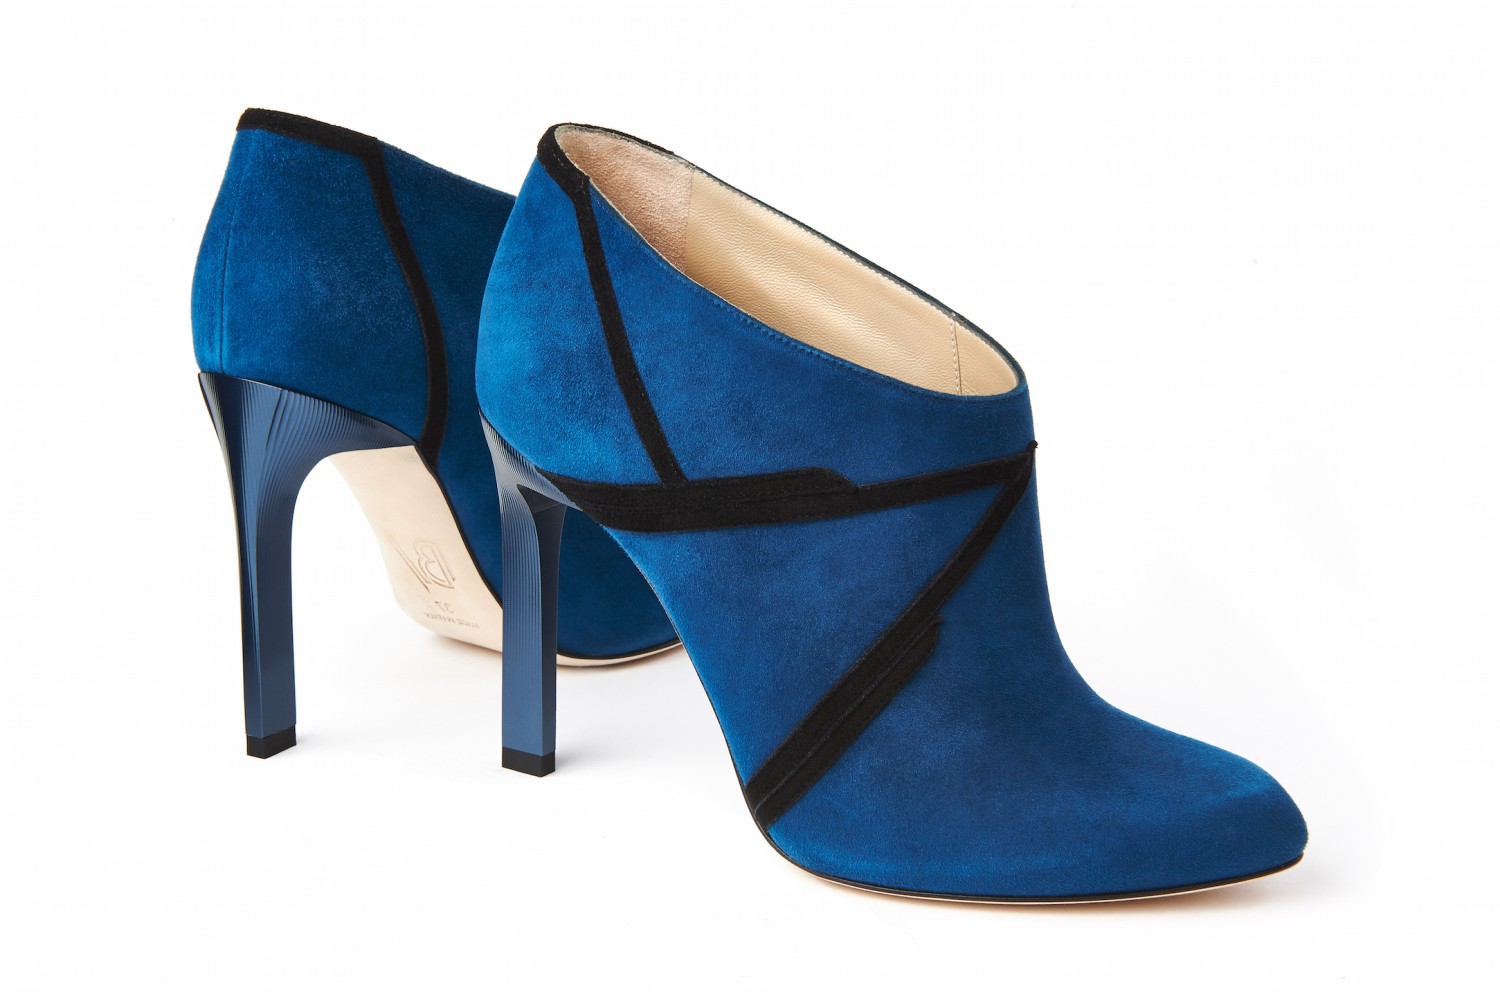 Souliers Bettina Vermillon FW15